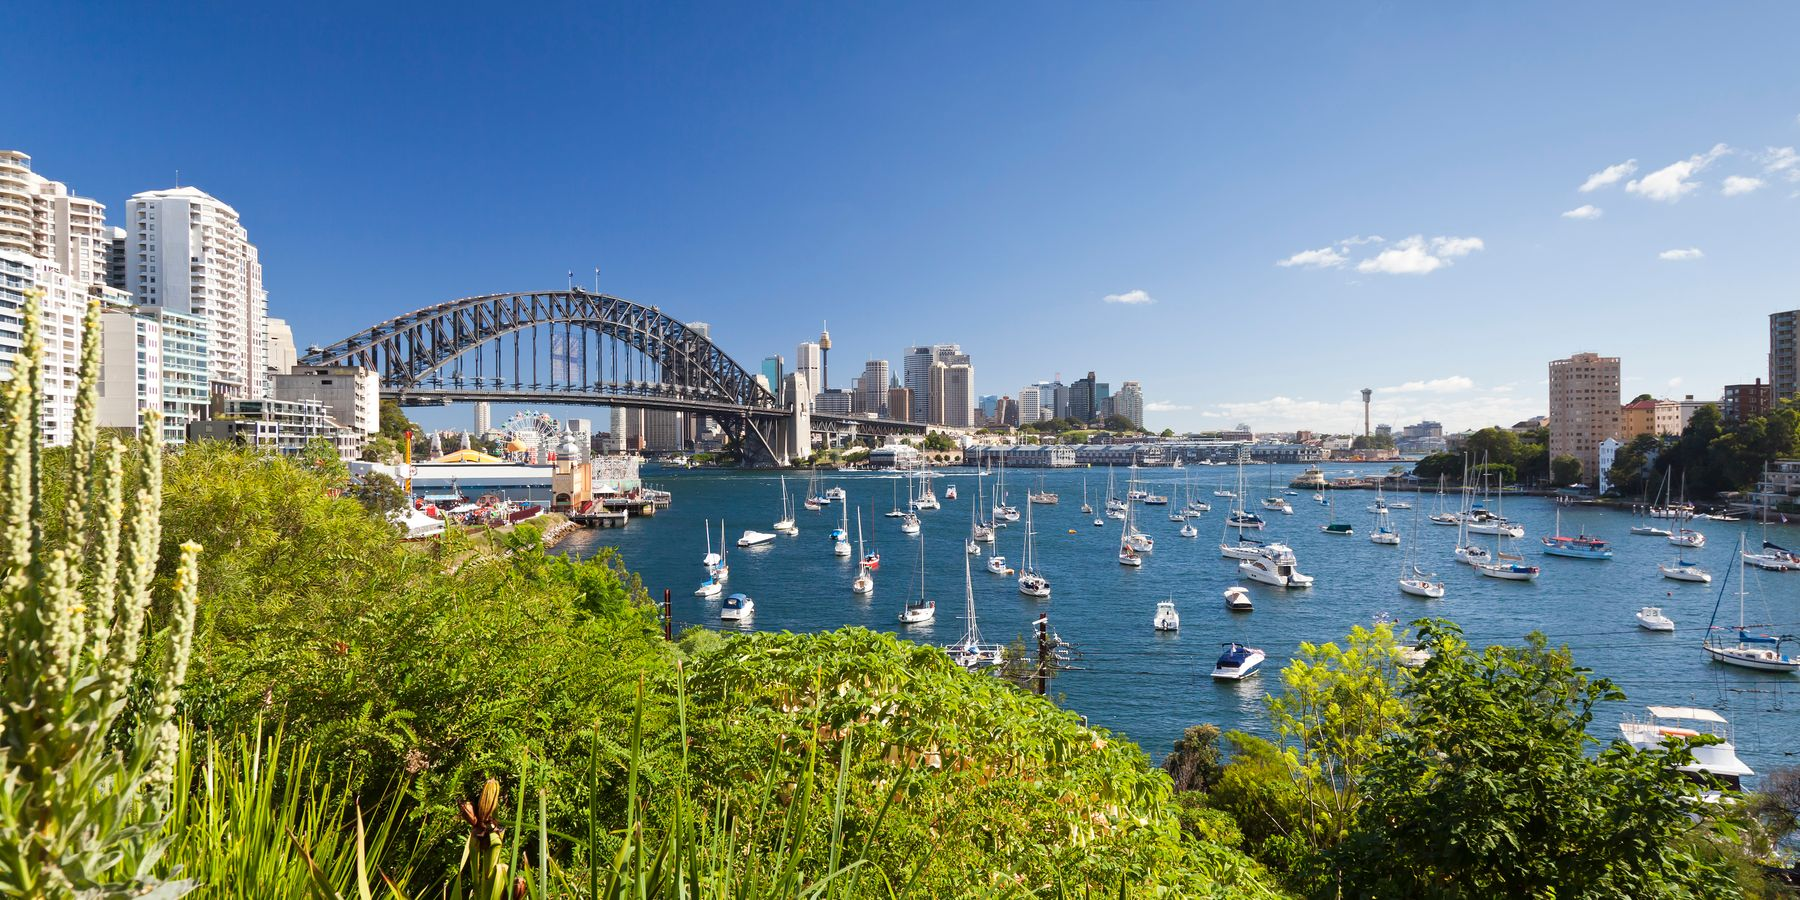 An image of harbour bridge in Sydney , New South Wales, Australia